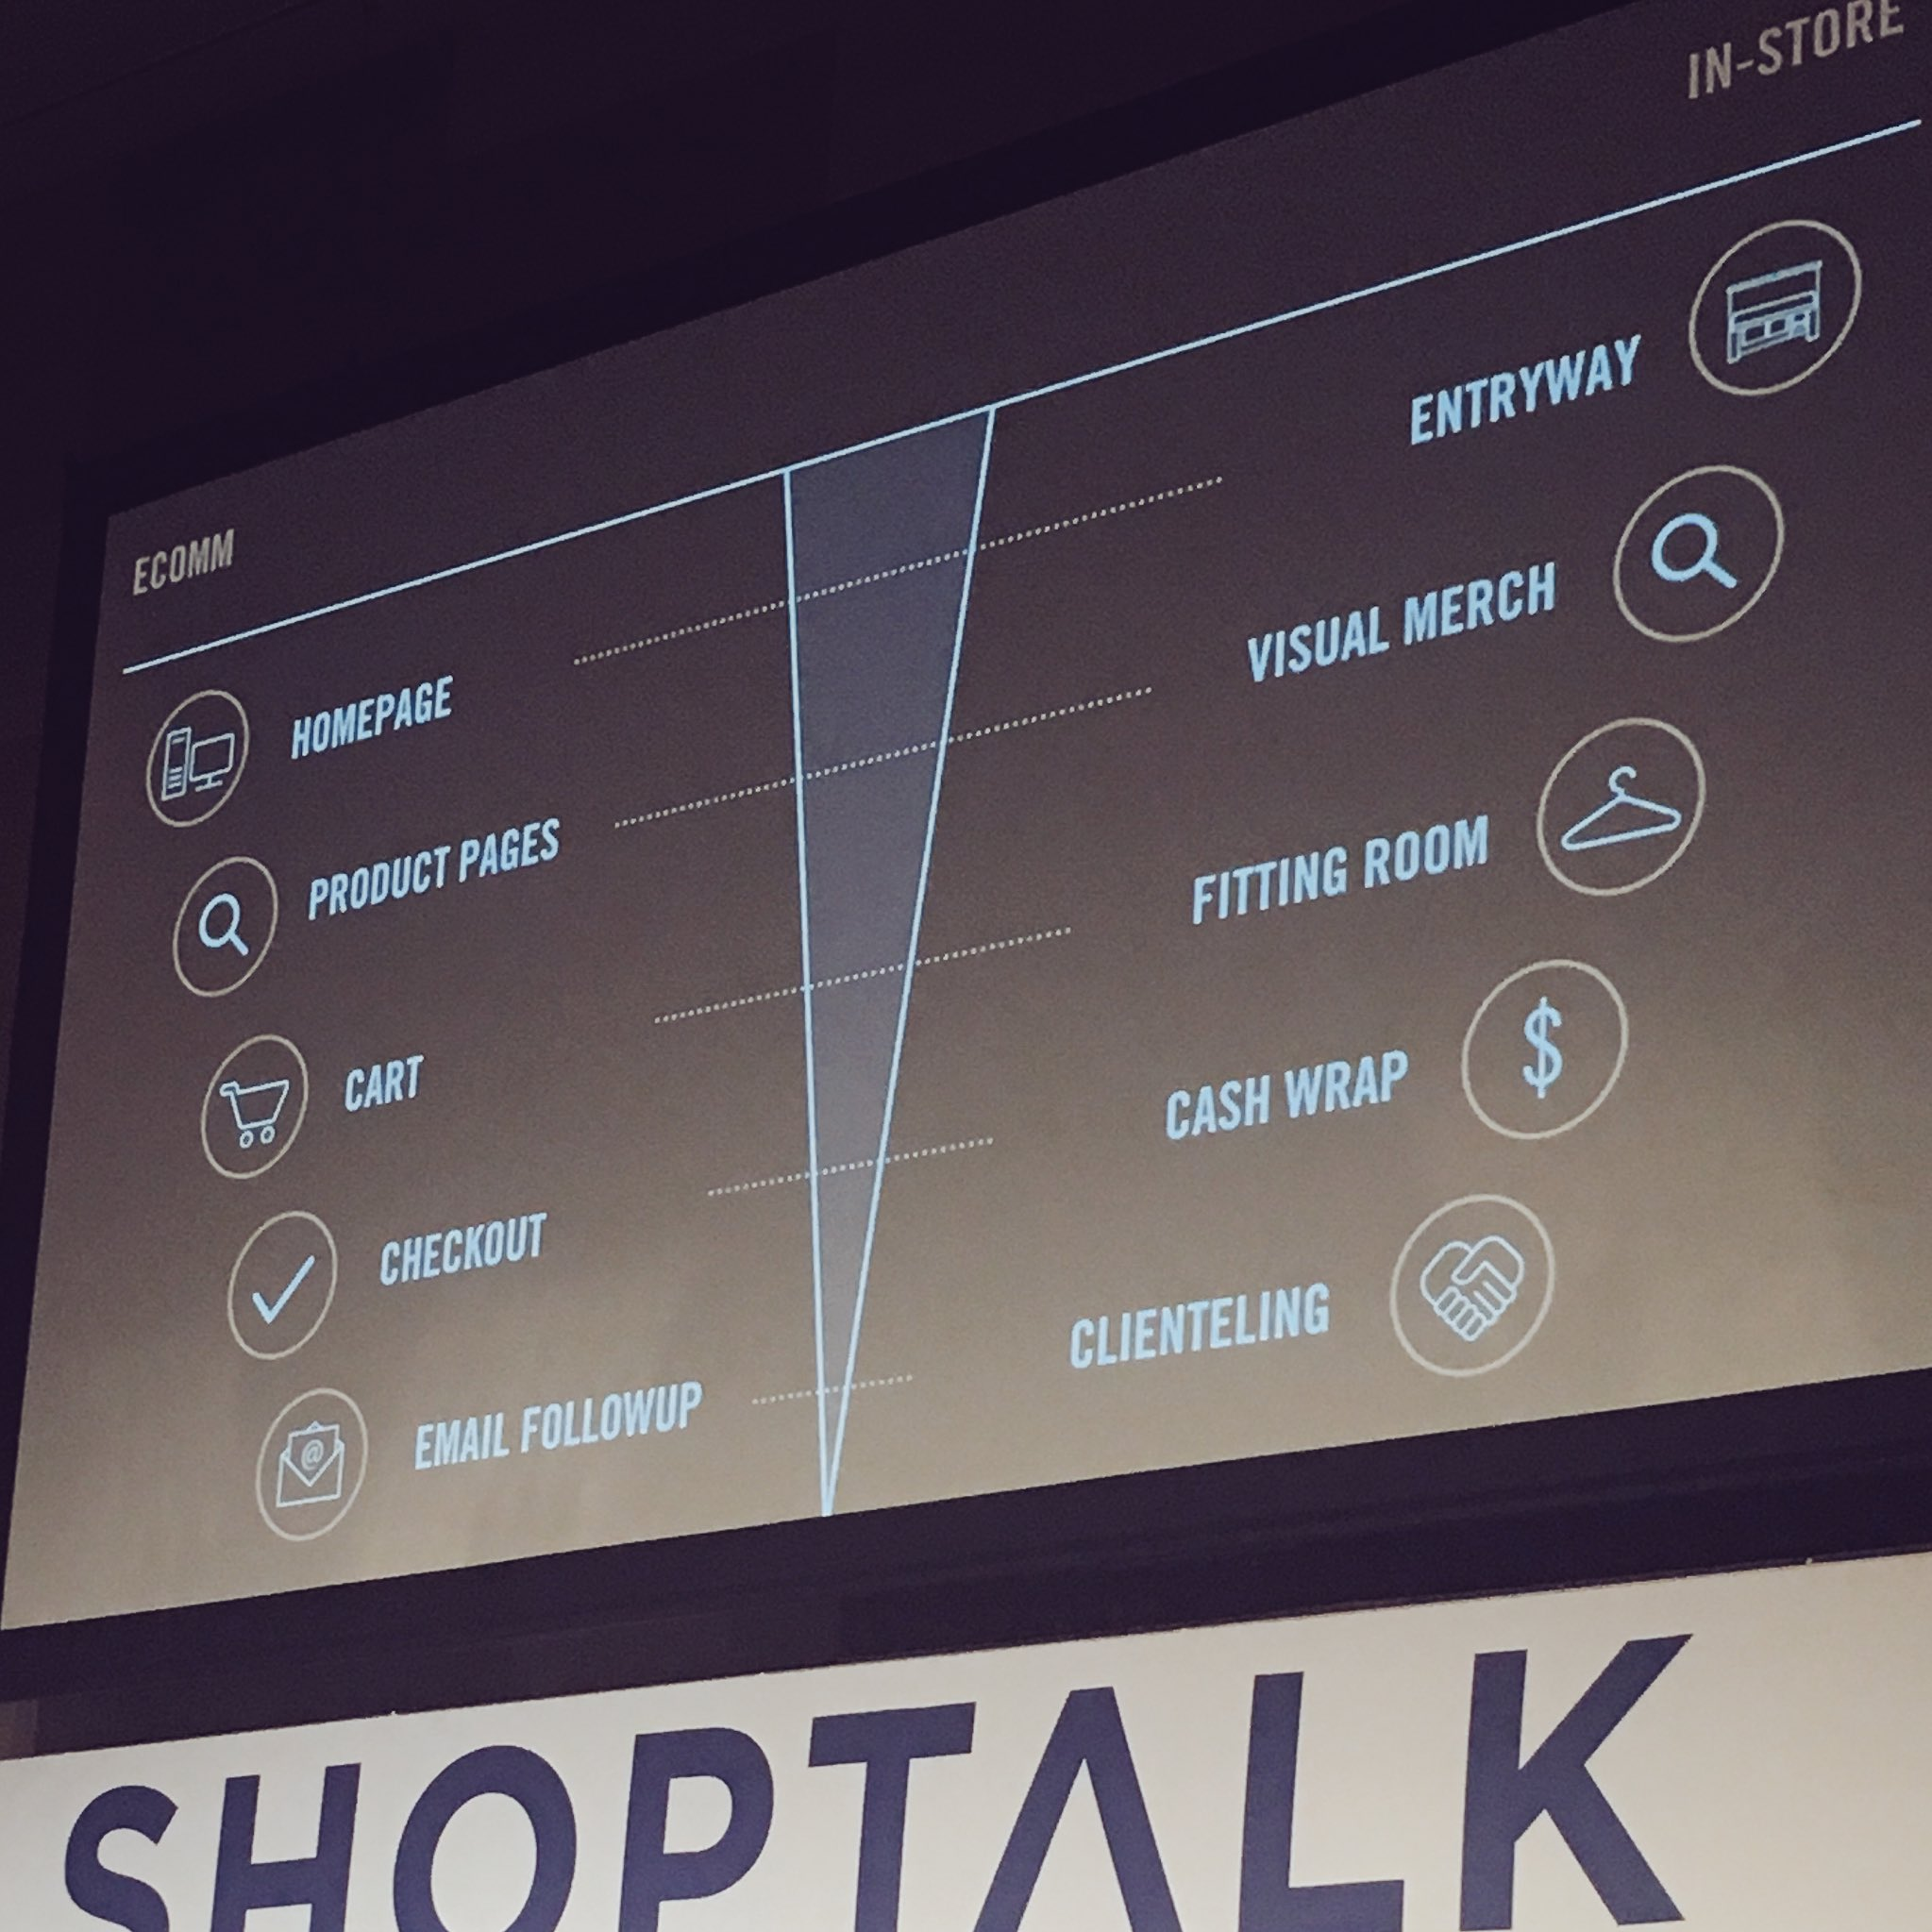 @htcypher I think you've had the most popular slide today. Strong work from the stache. #shoptalk17 https://t.co/YsxShD8H1b